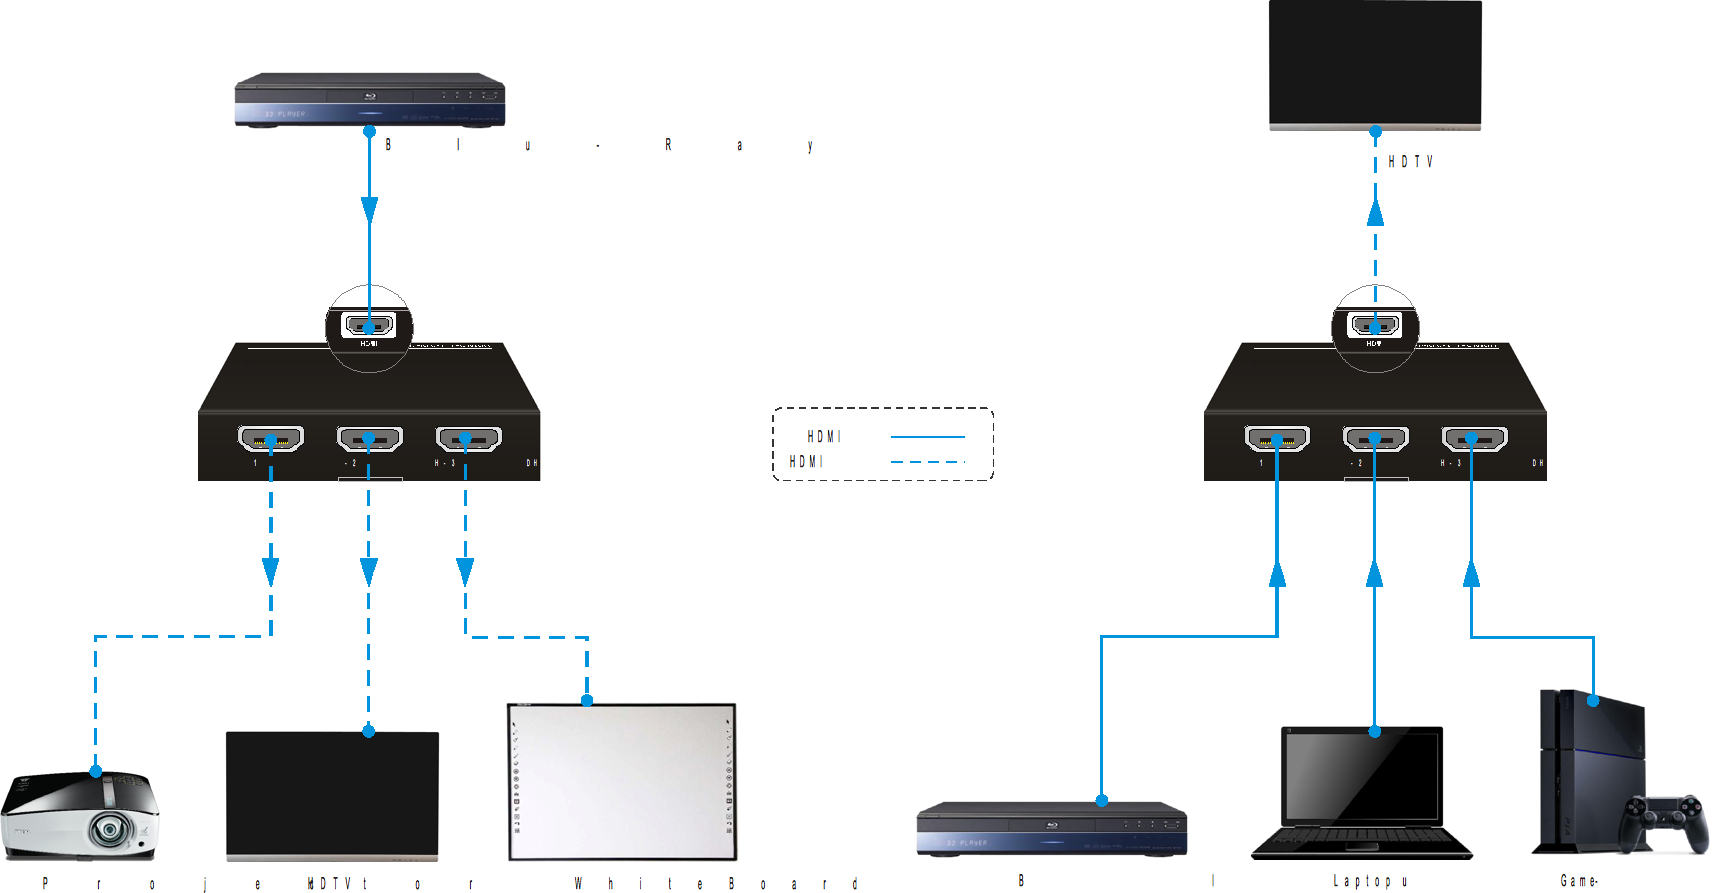 Avs HDMI 2.0 Bi-directional Switcher Connection Diagram